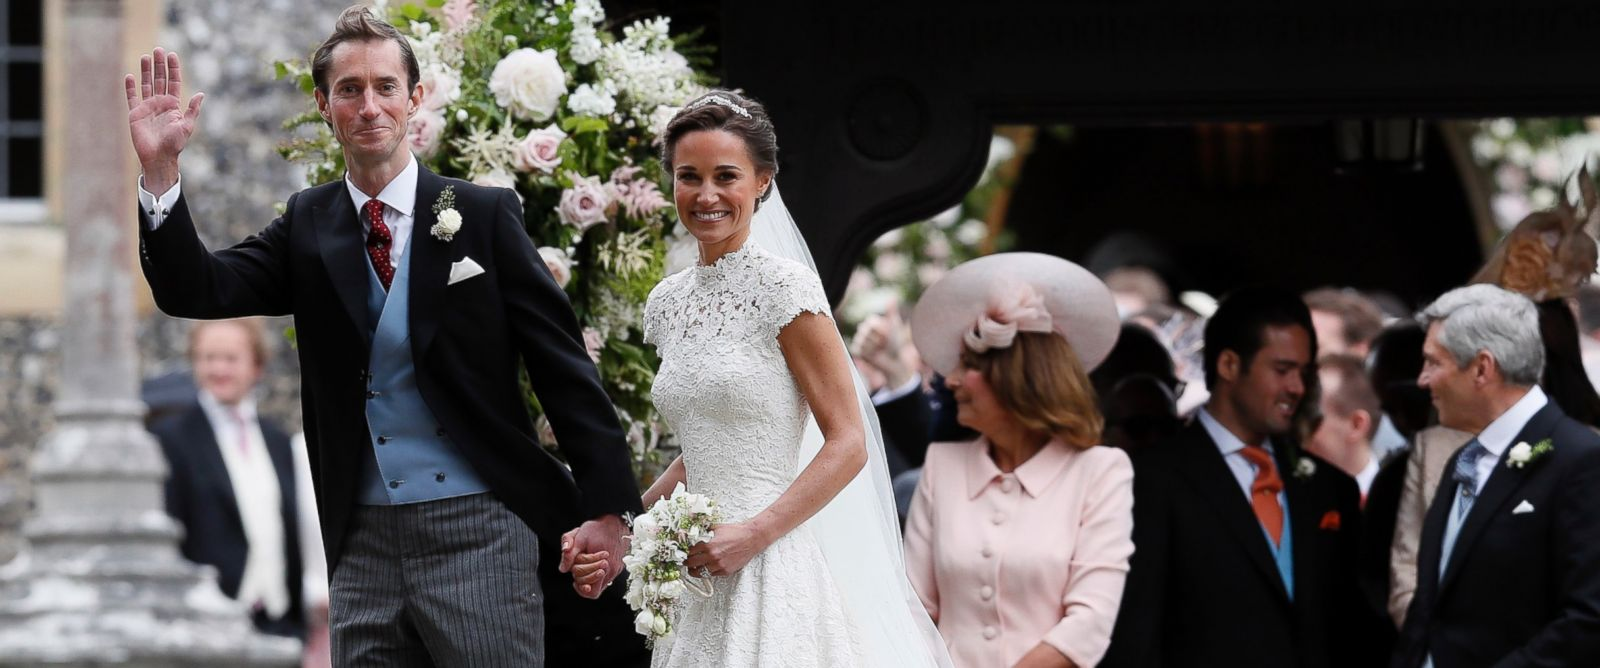 New details on Pippa Middleton's wedding reception - ABC News - photo#8